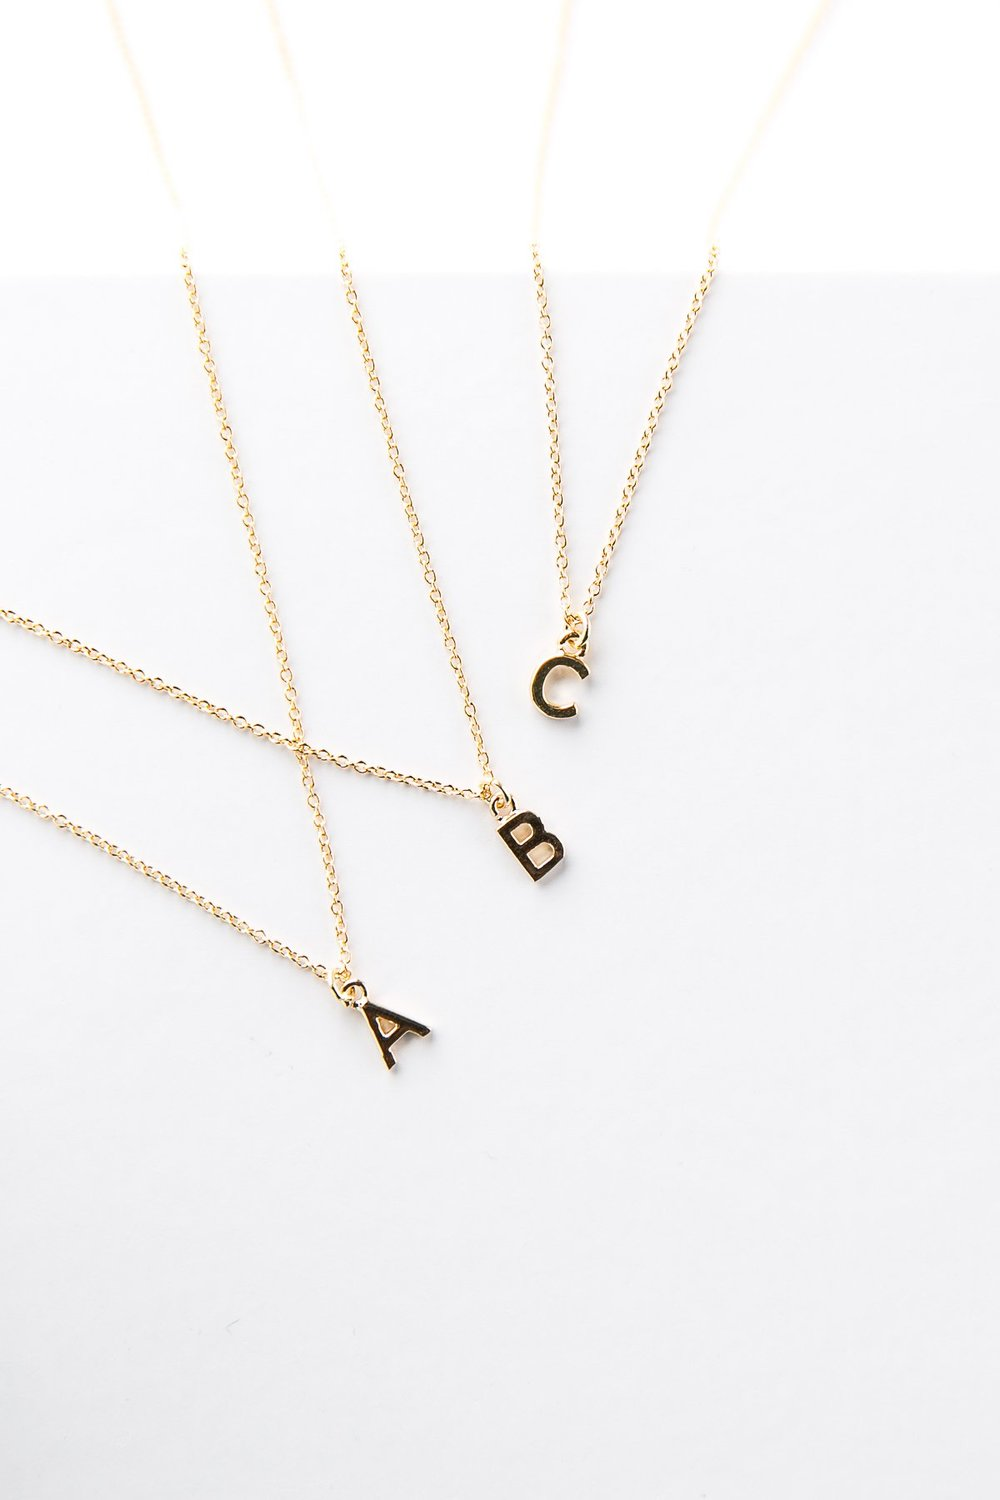 monogram_letter_personalized_necklace_dainty-2_2048x2048.jpg